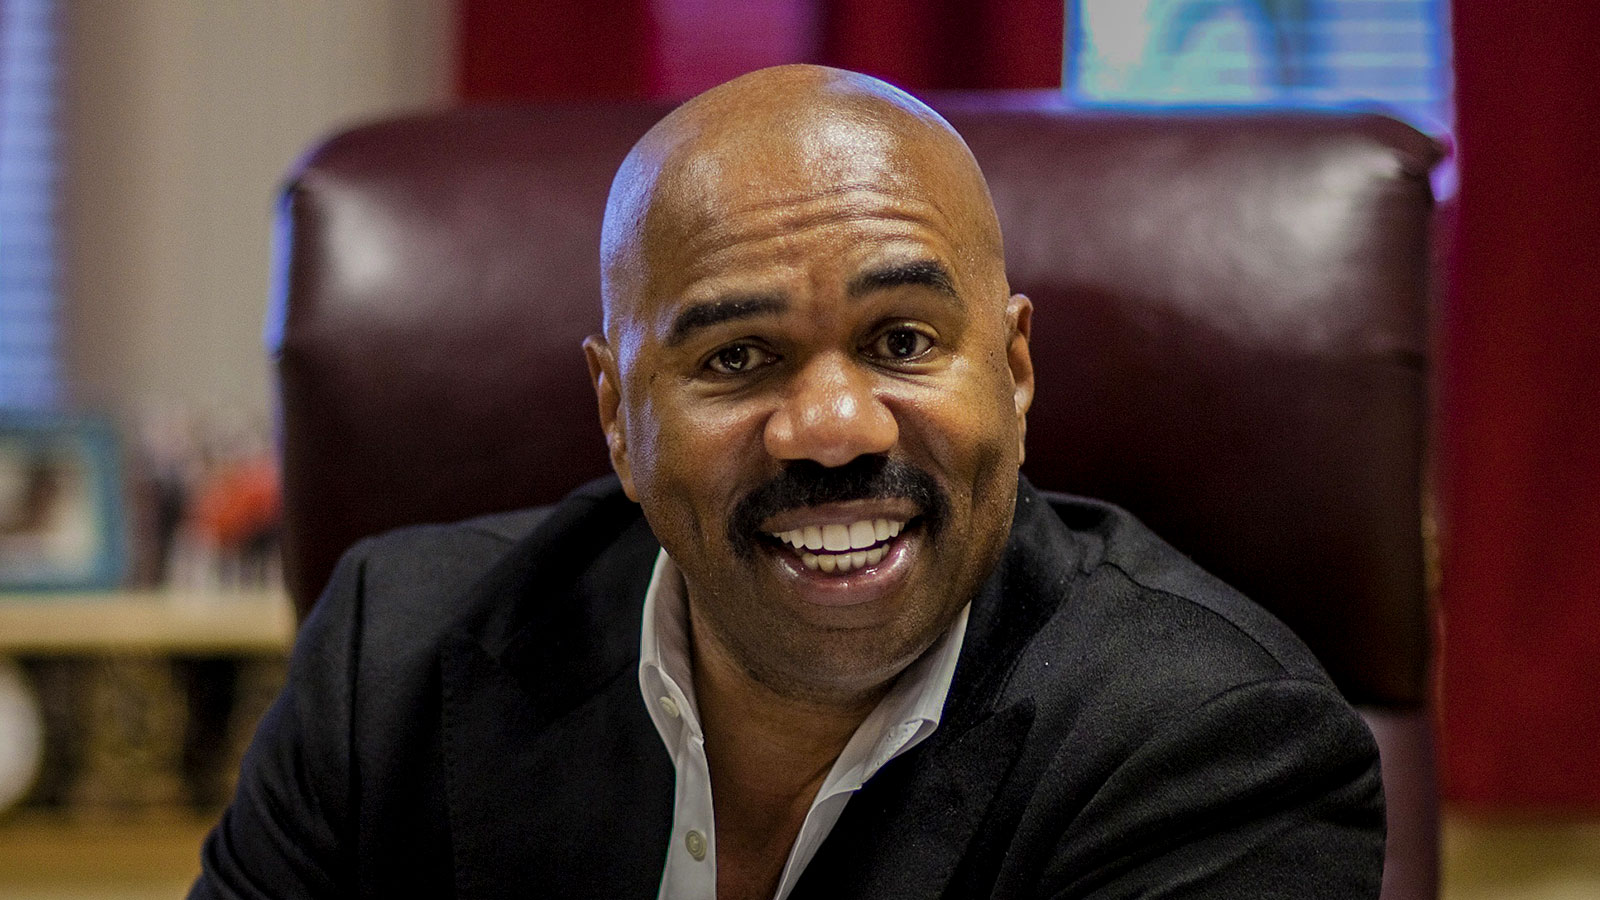 steve harvey u0026 39 s diva letter shows what happens when bosses